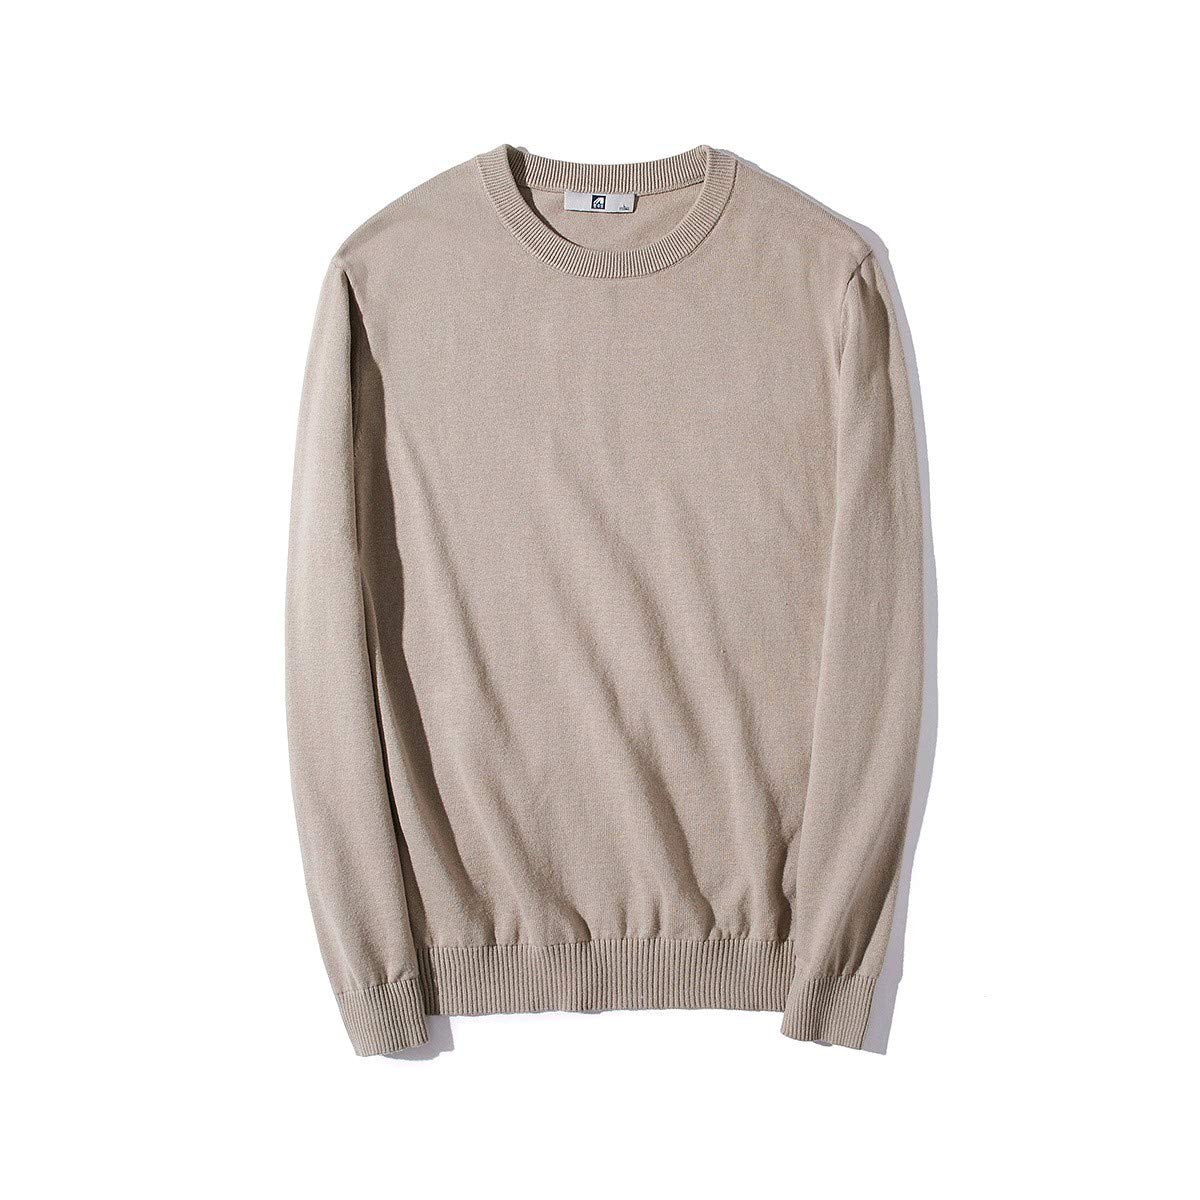 YUNY Mens His and Her Juniors Colortone Knitting Tshirt Sweater 4 S